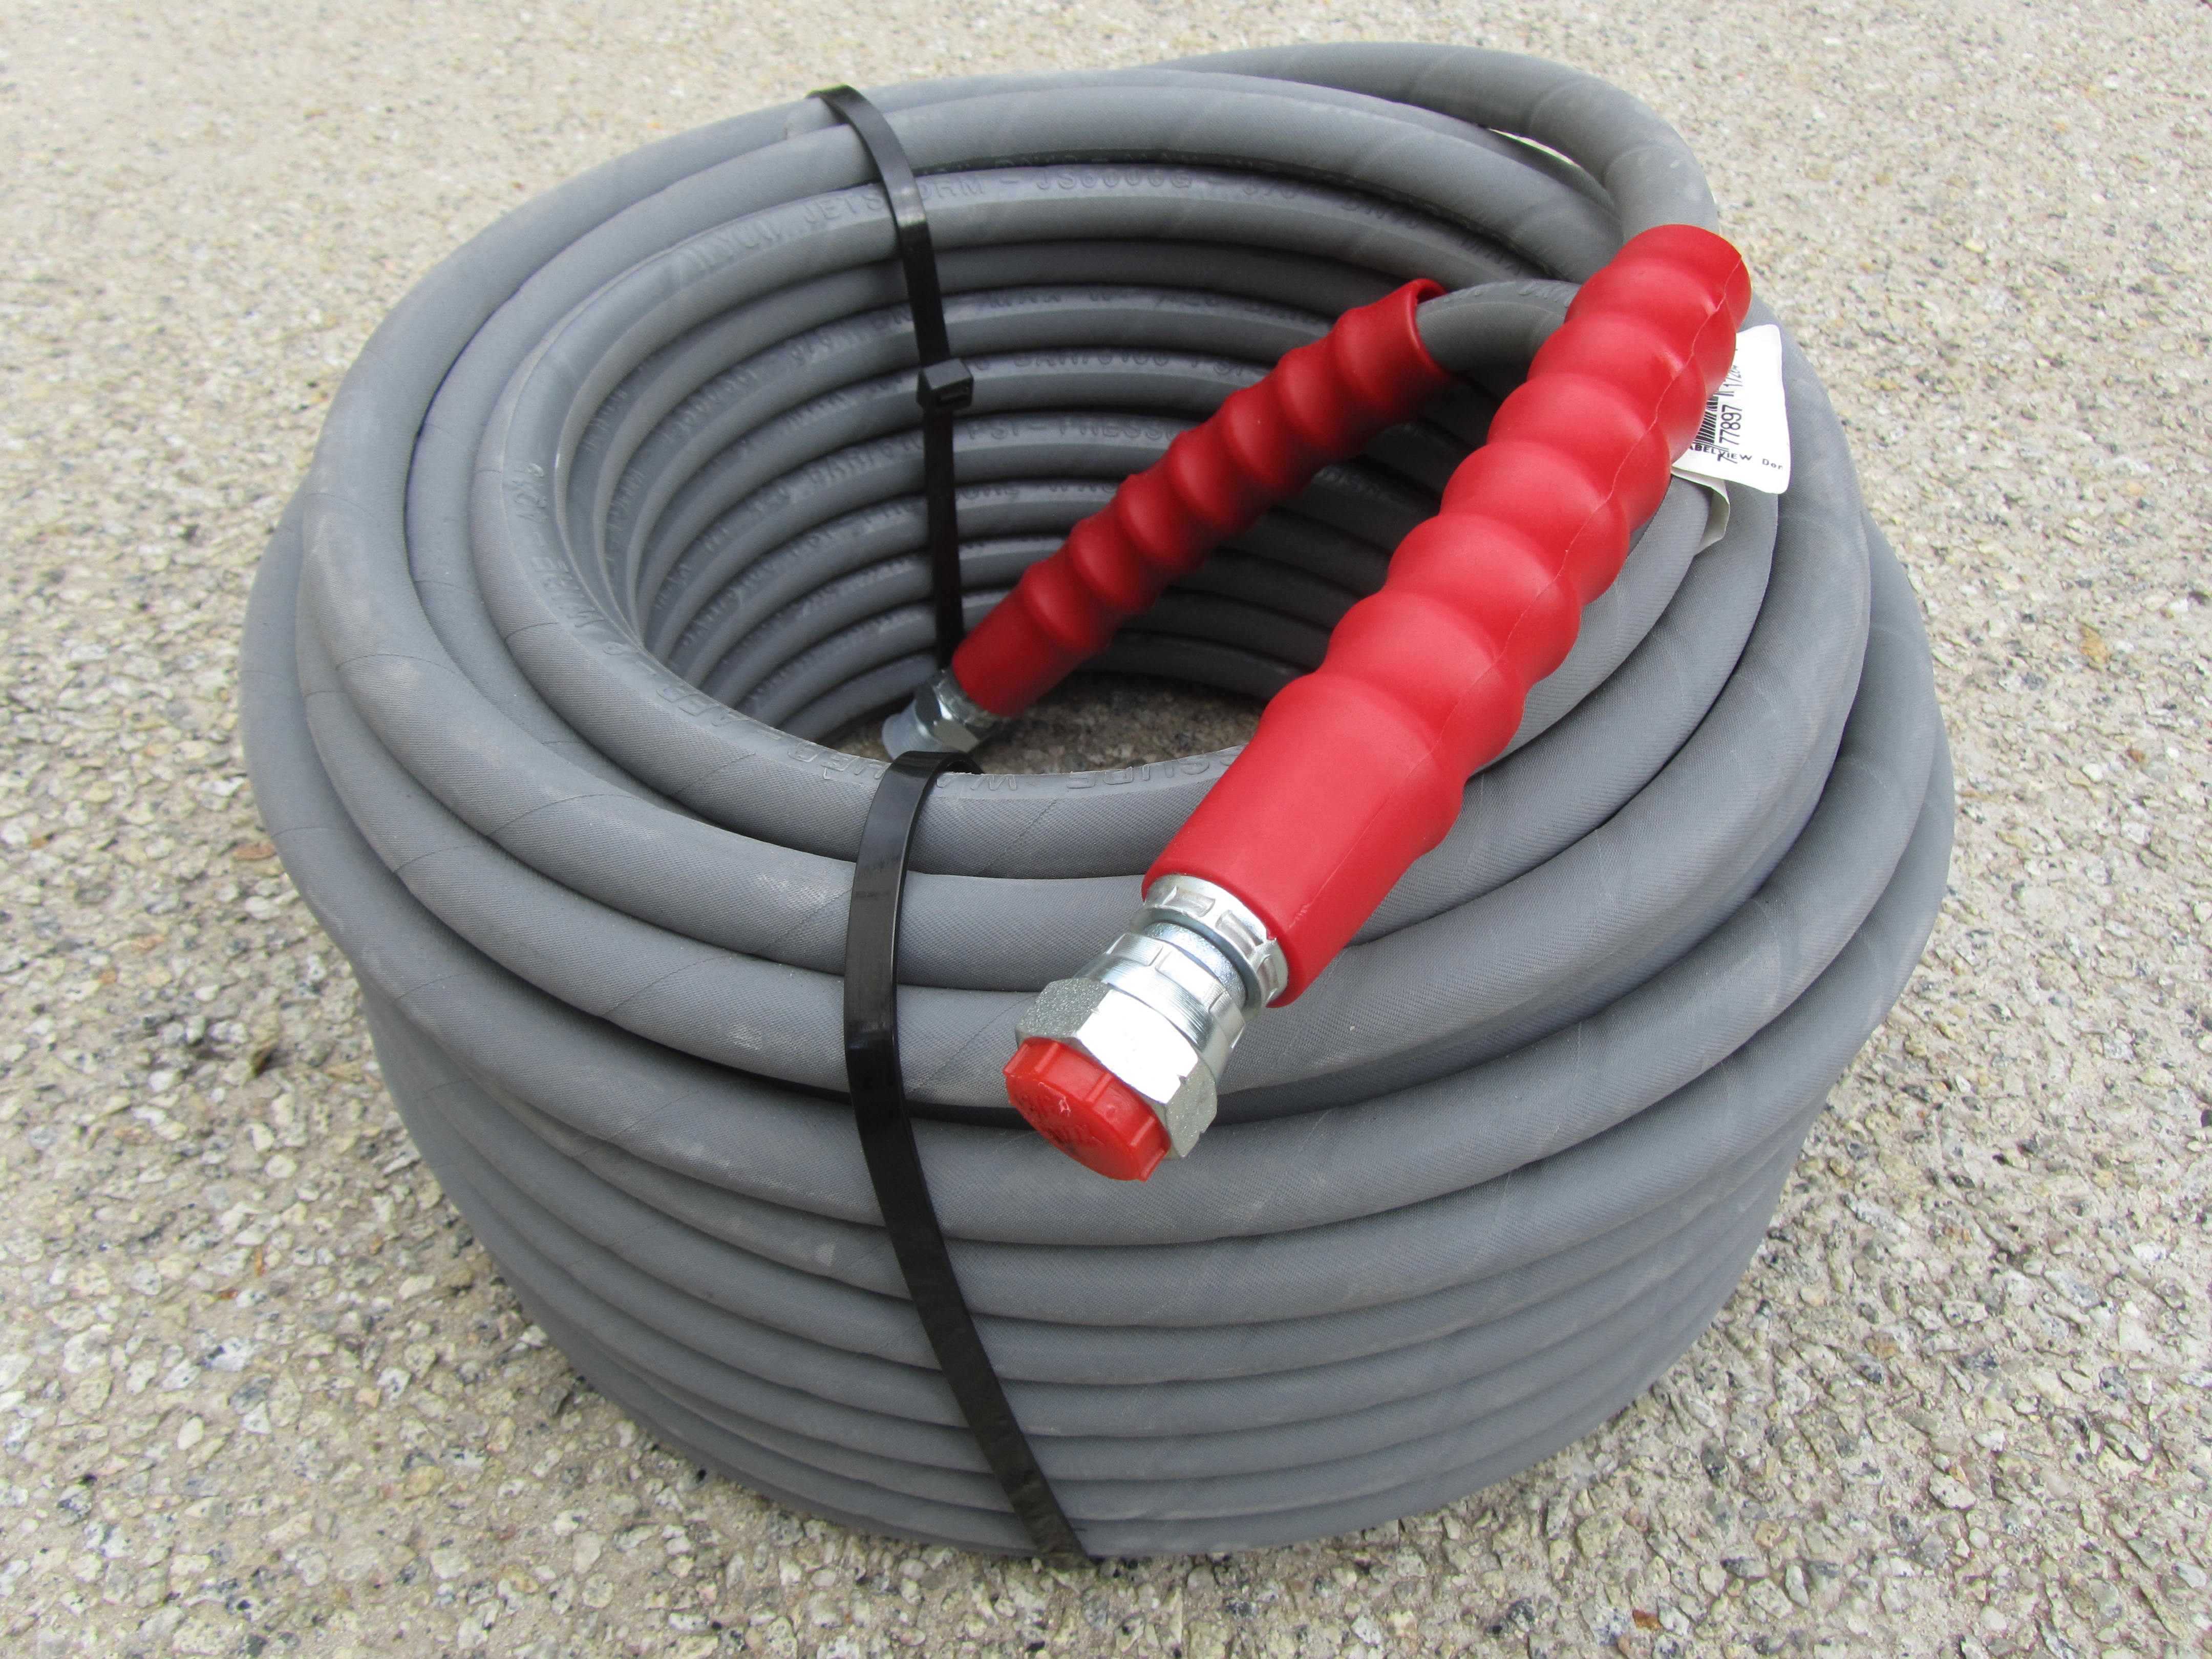 Hoses on Special